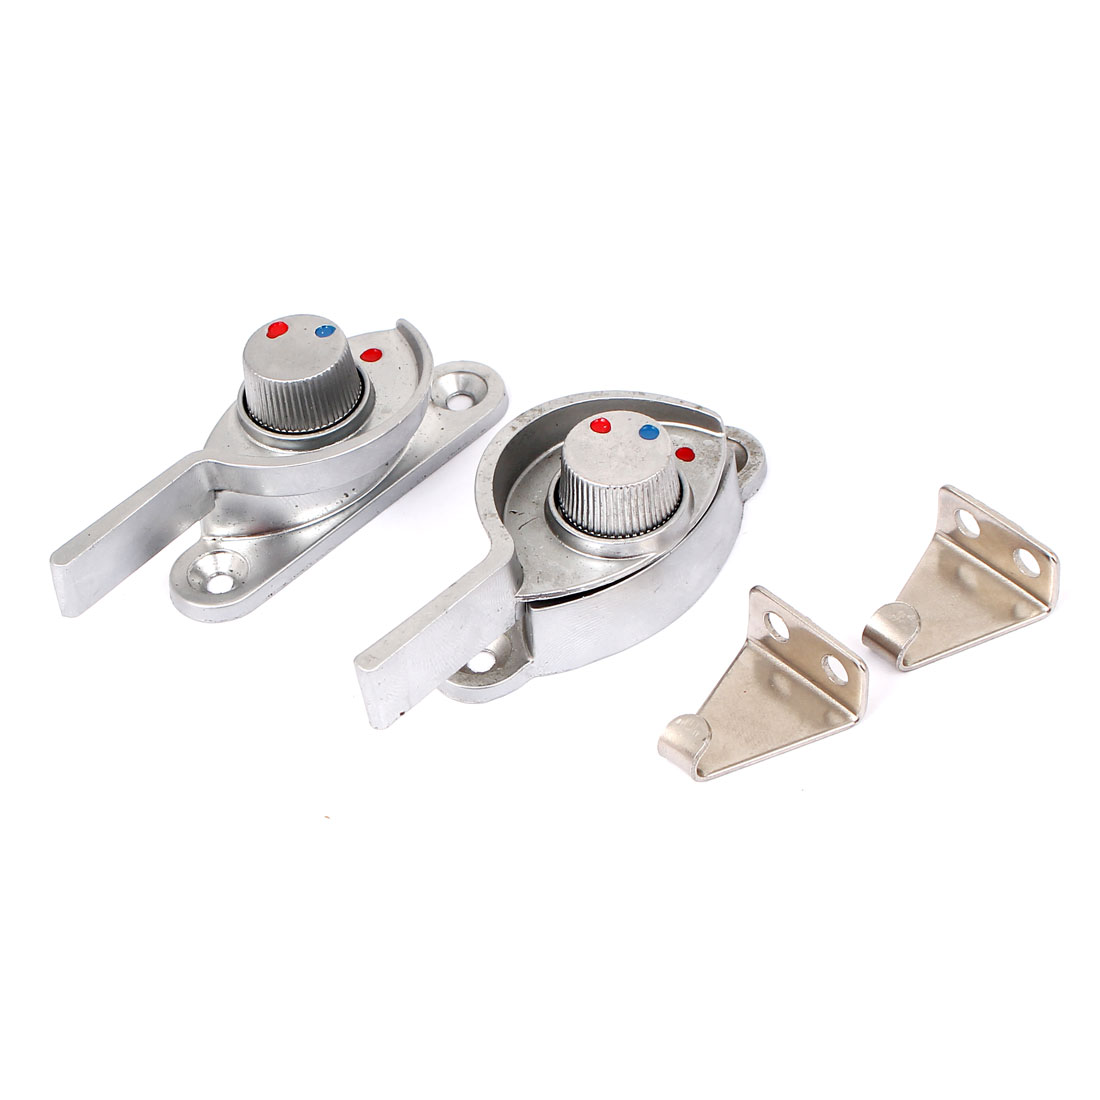 2pcs Metal Crescent Shaped Glass Window Locking Right Left Handle Casement Sash Locks